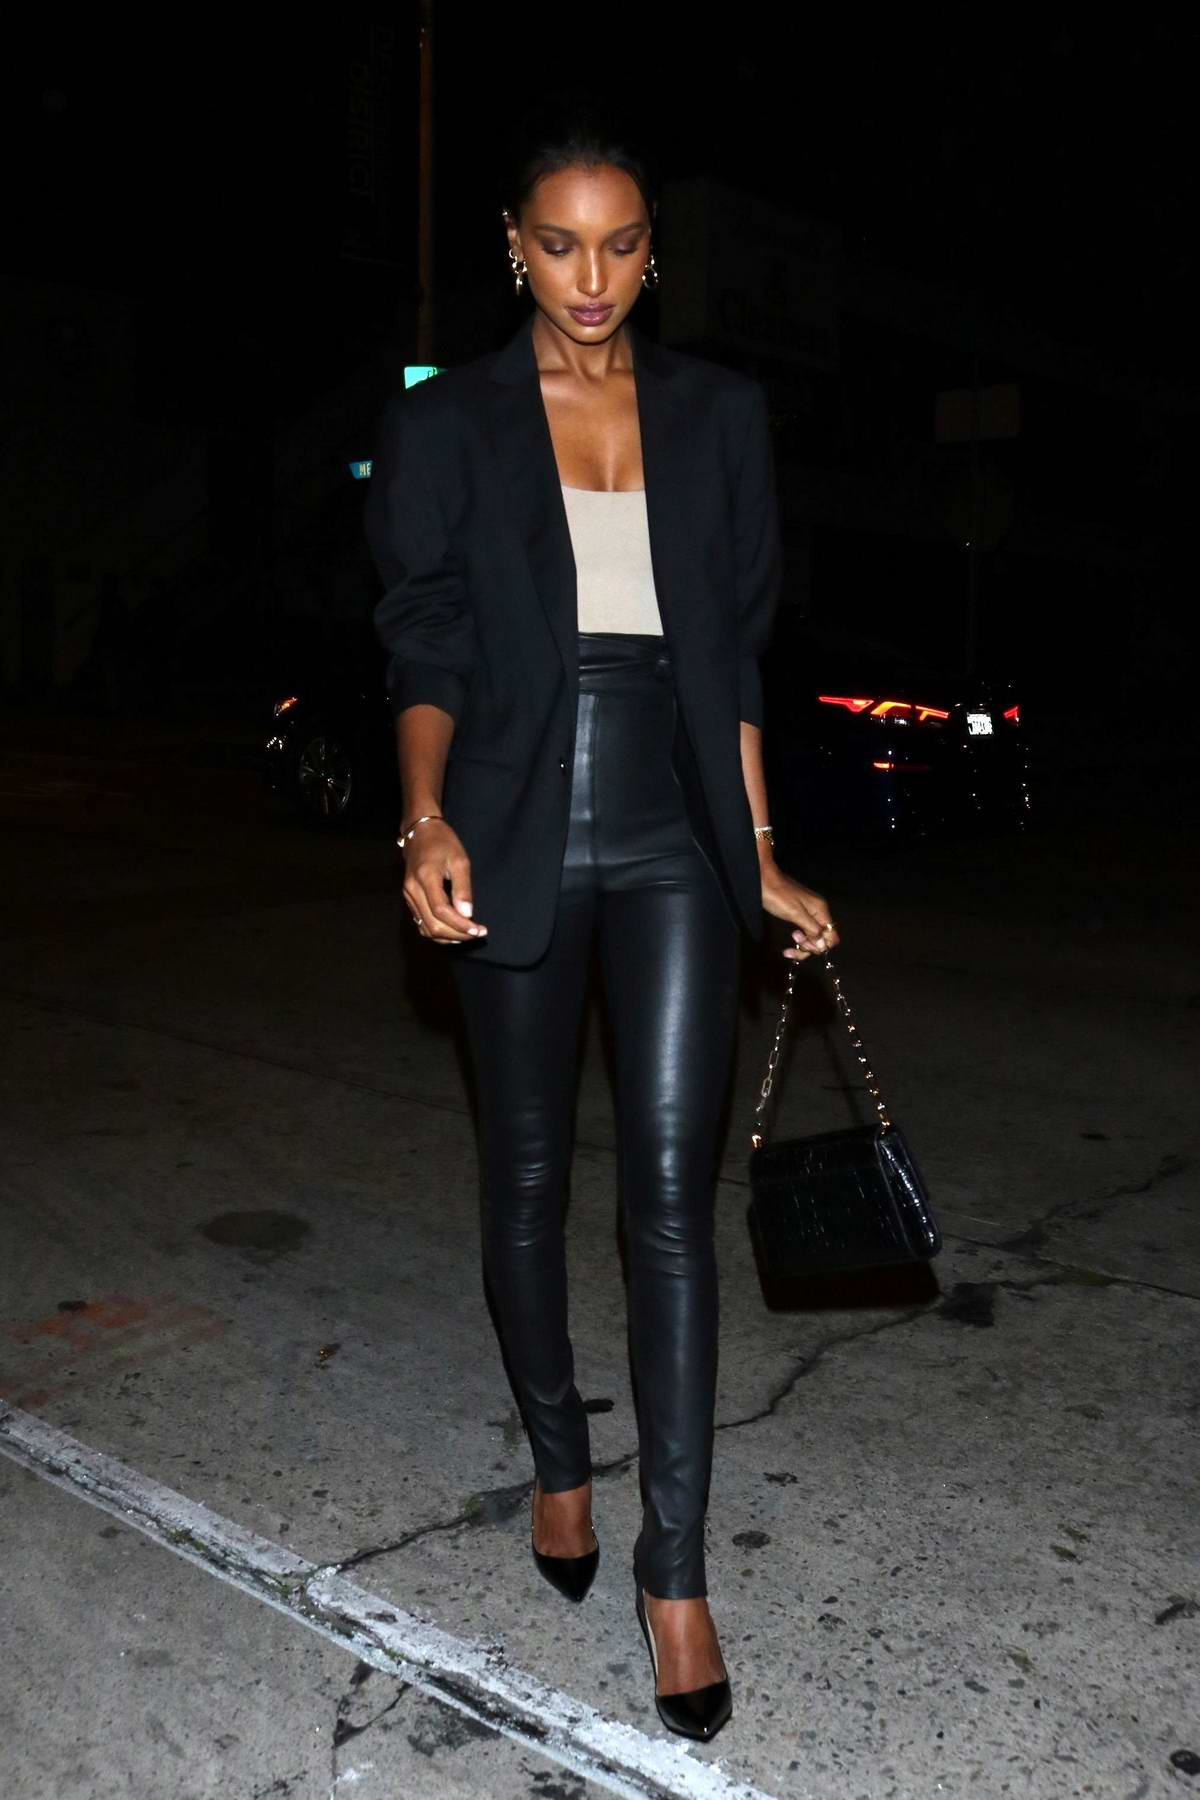 Jasmine Tookes looks great in a black blazer and leather pants during a night out at Craig's in West Hollywood, California